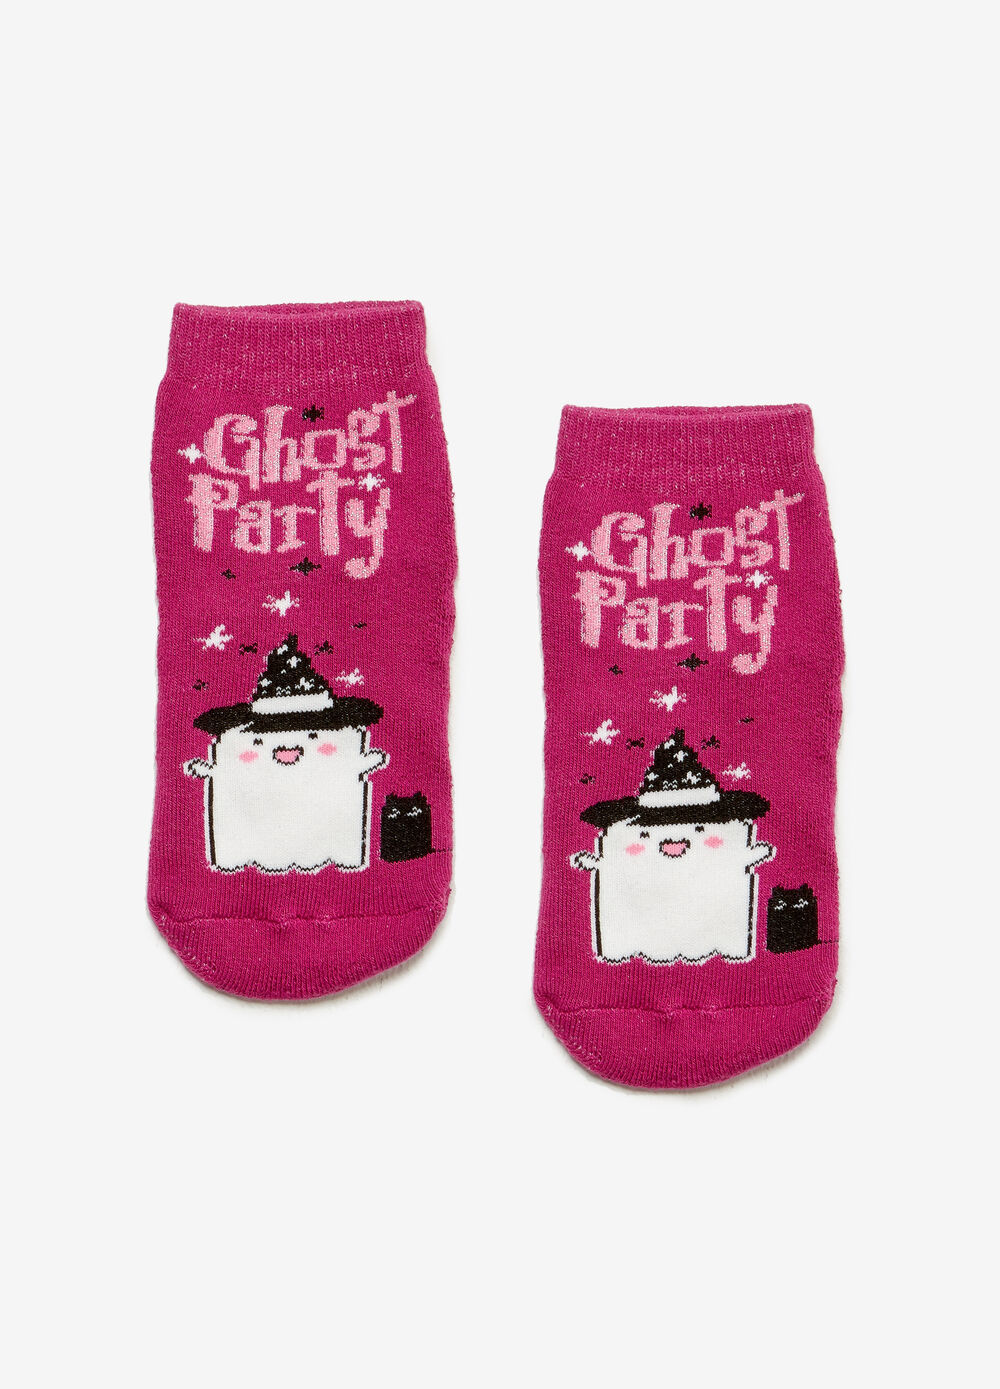 Short slipper socks with ghost print